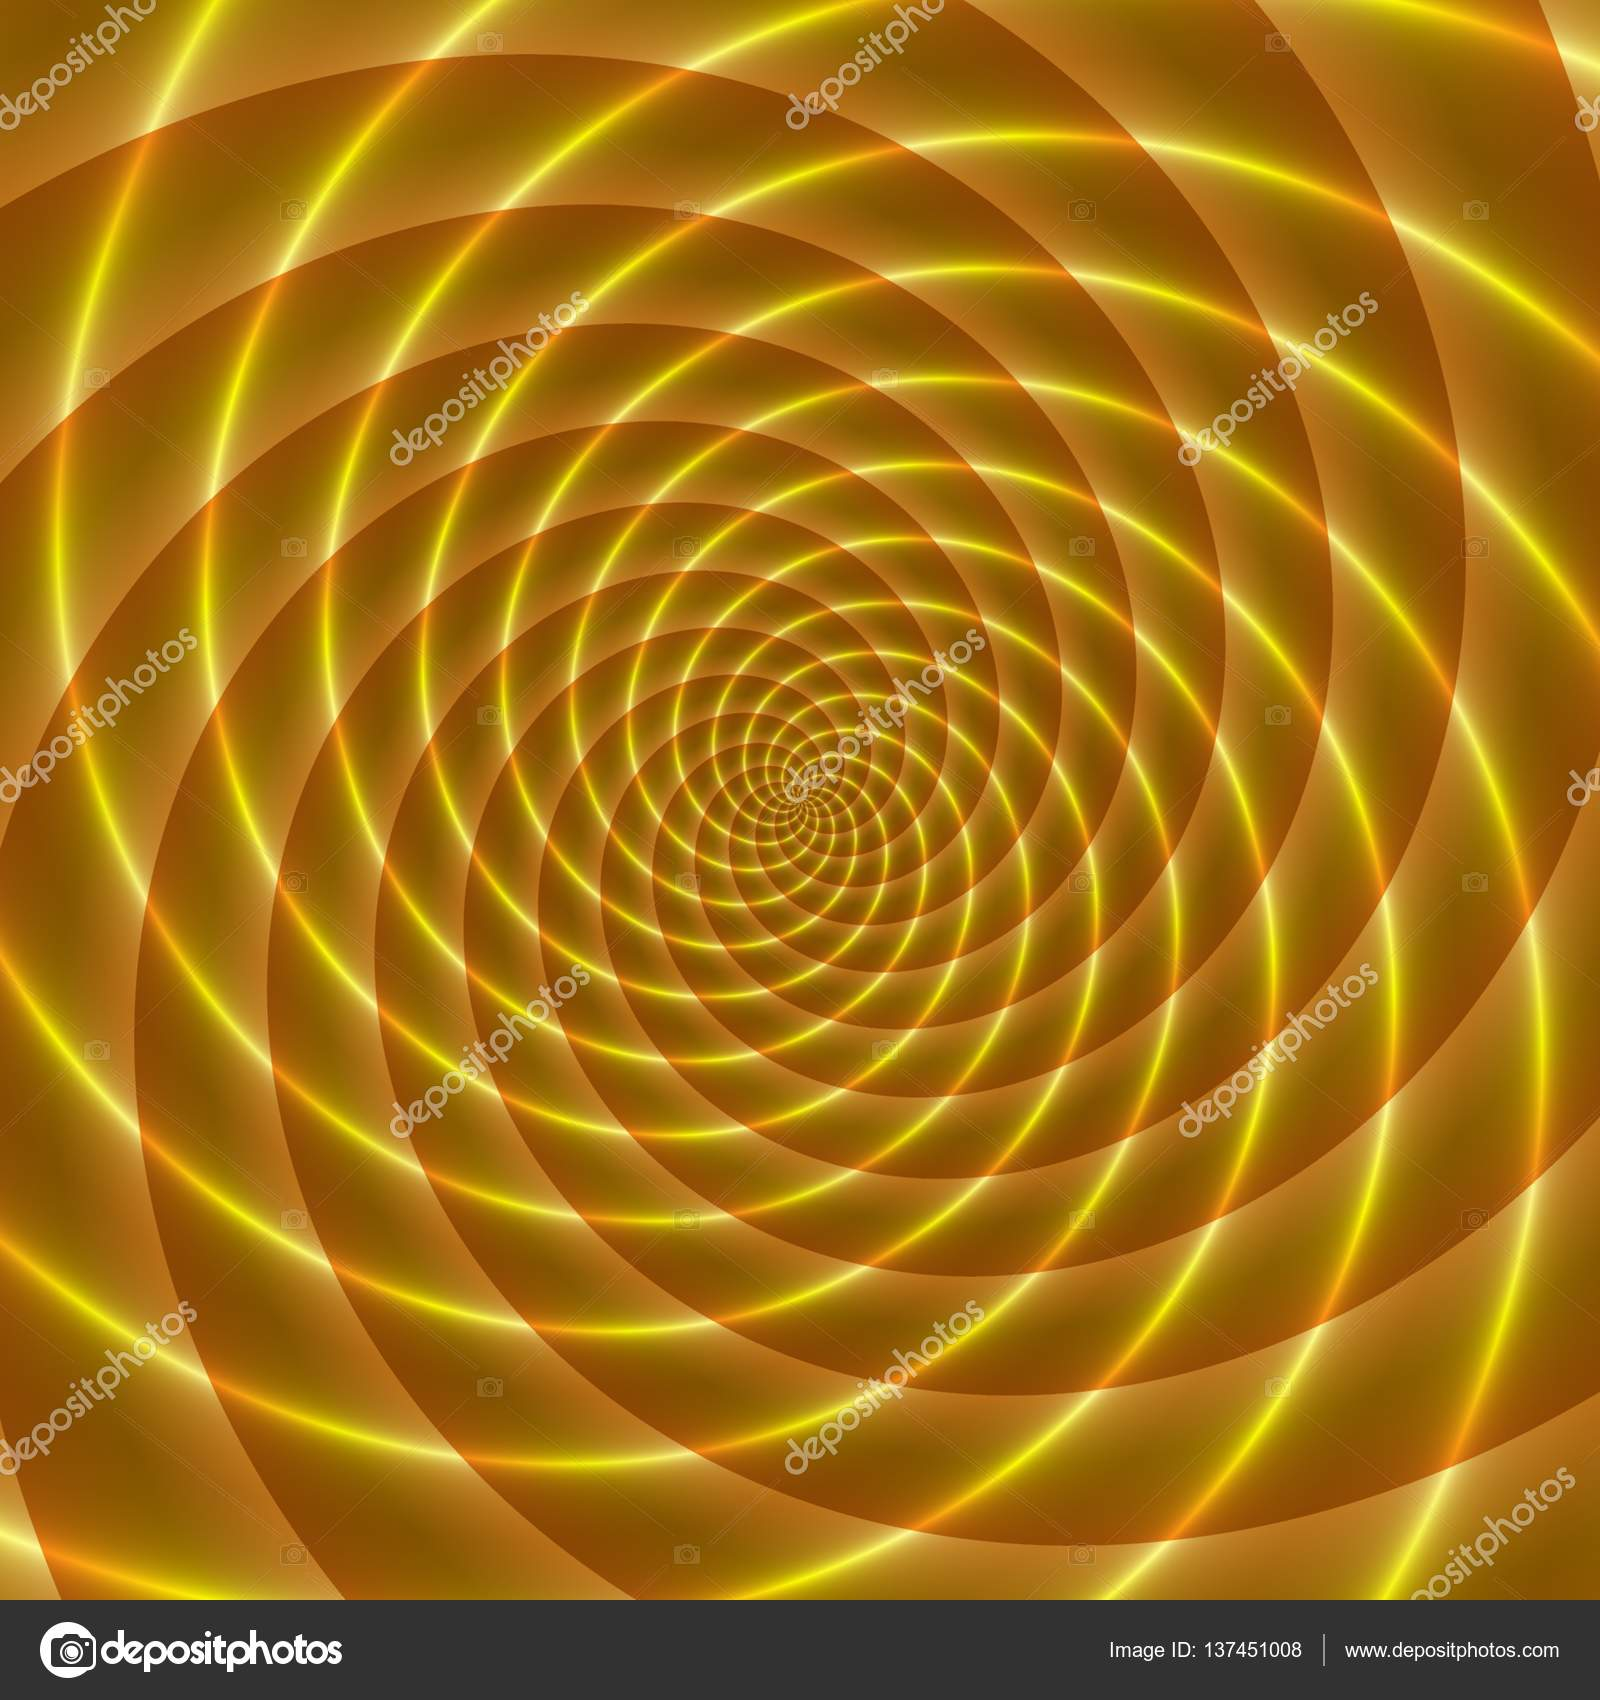 golden rays abstract illustration of bright yellow orange spirals stock photo